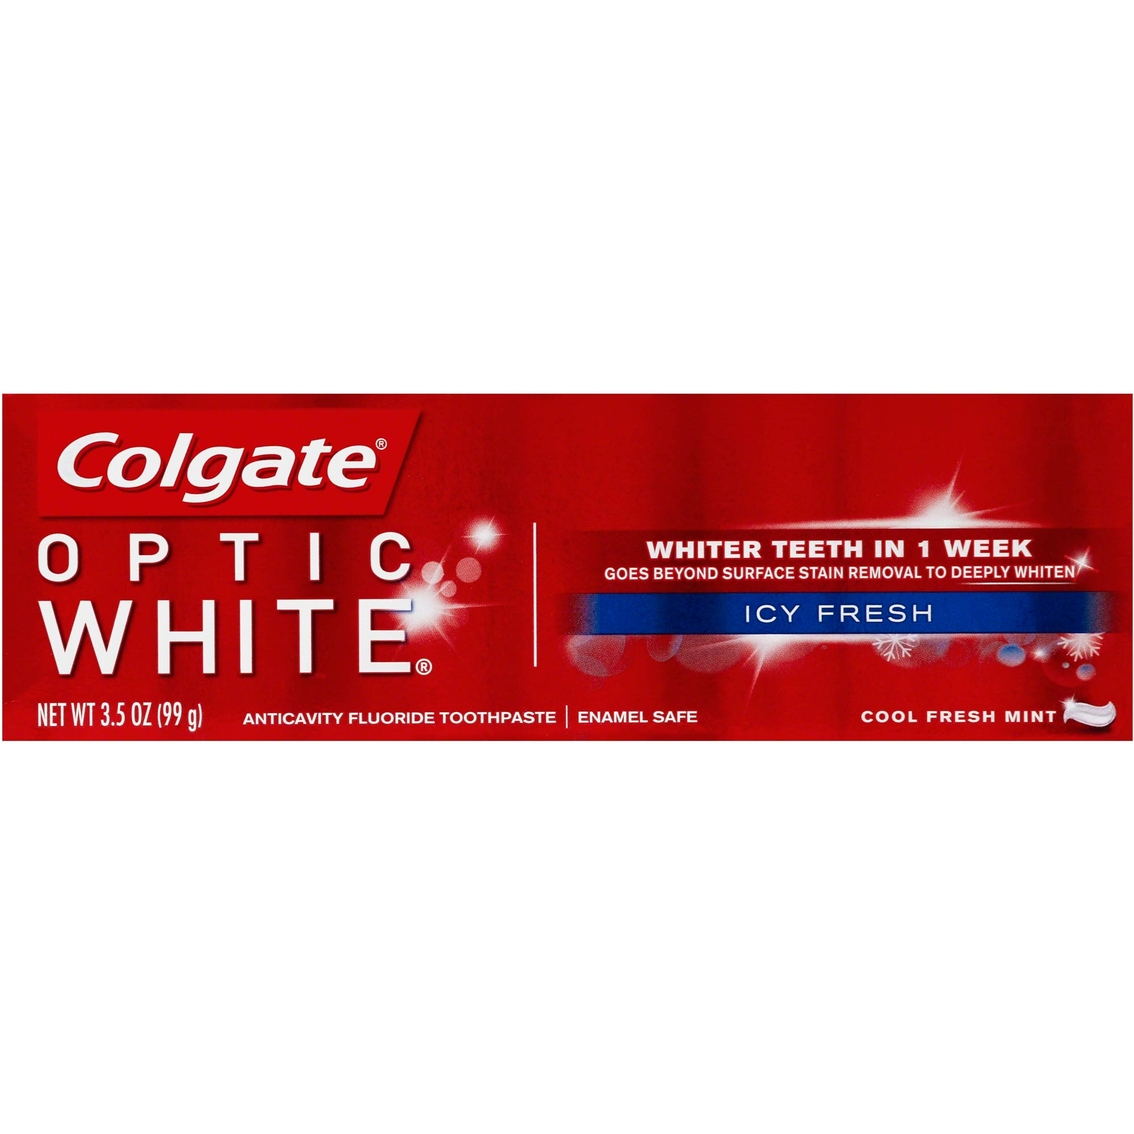 Colgate Optic White Icy Fresh Toothpaste Cool Fresh Mint Tooth